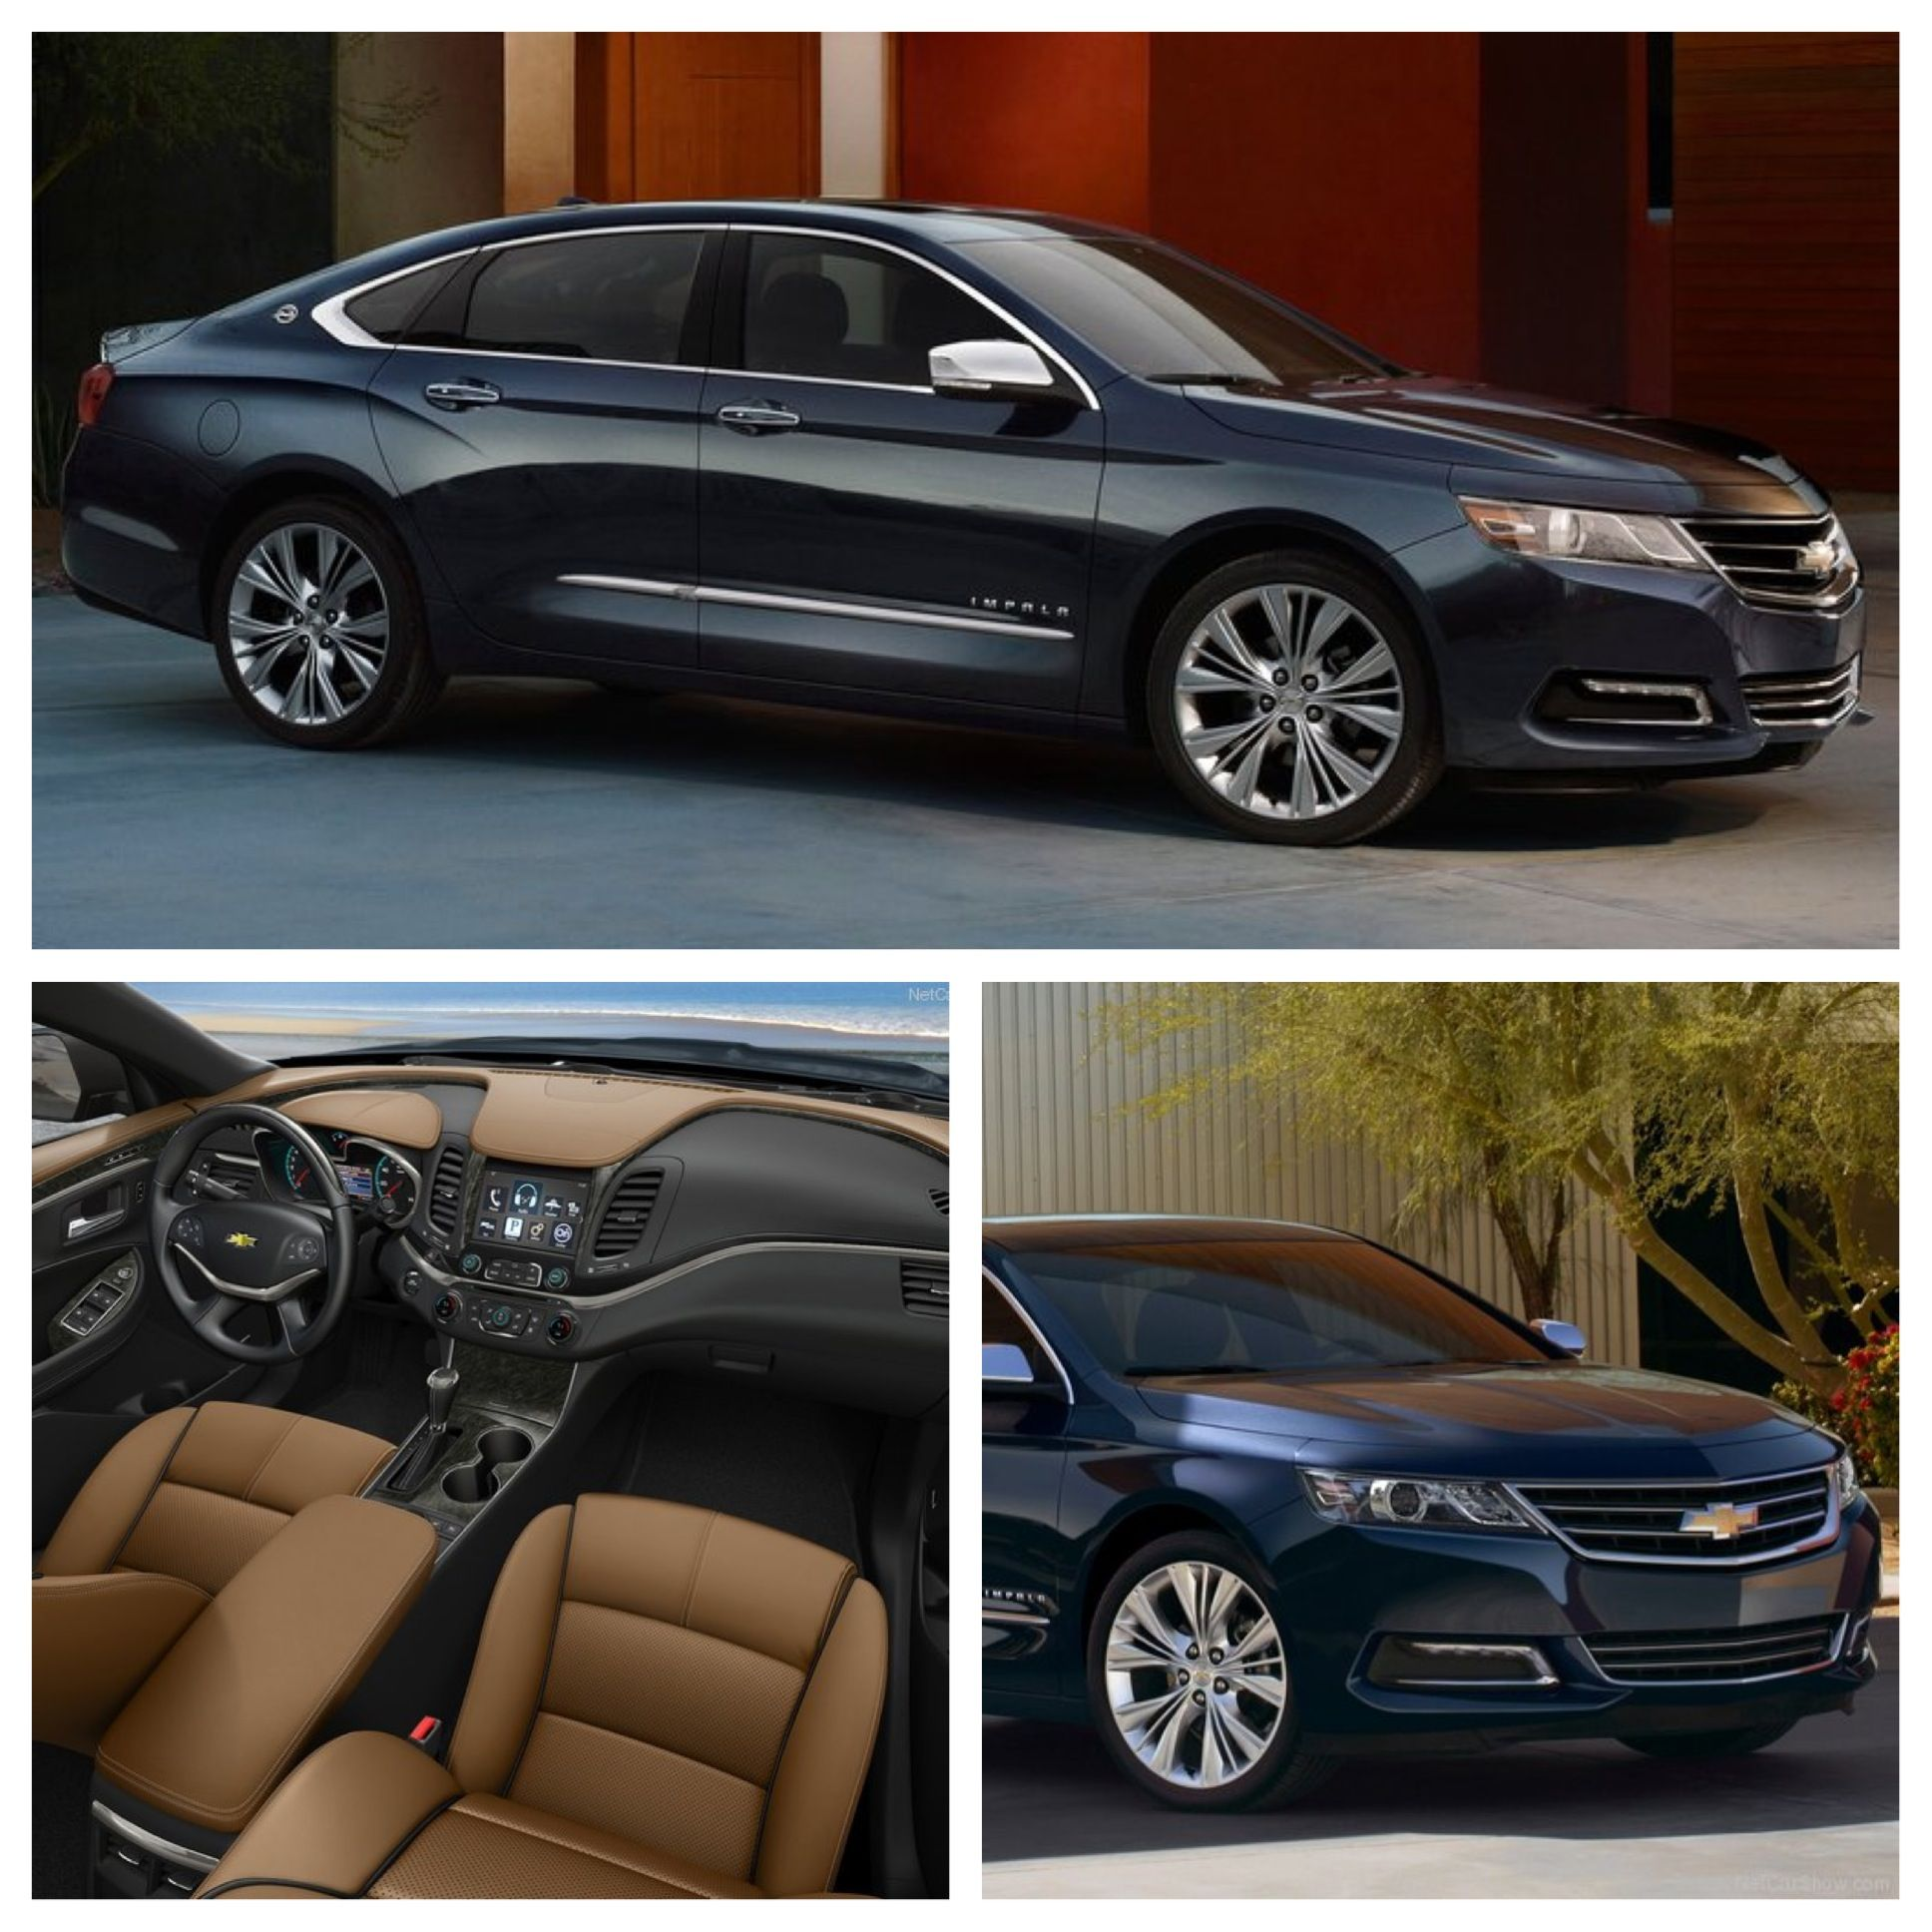 2014 Chevy Impala... Graduation Gift from Parents? 2014